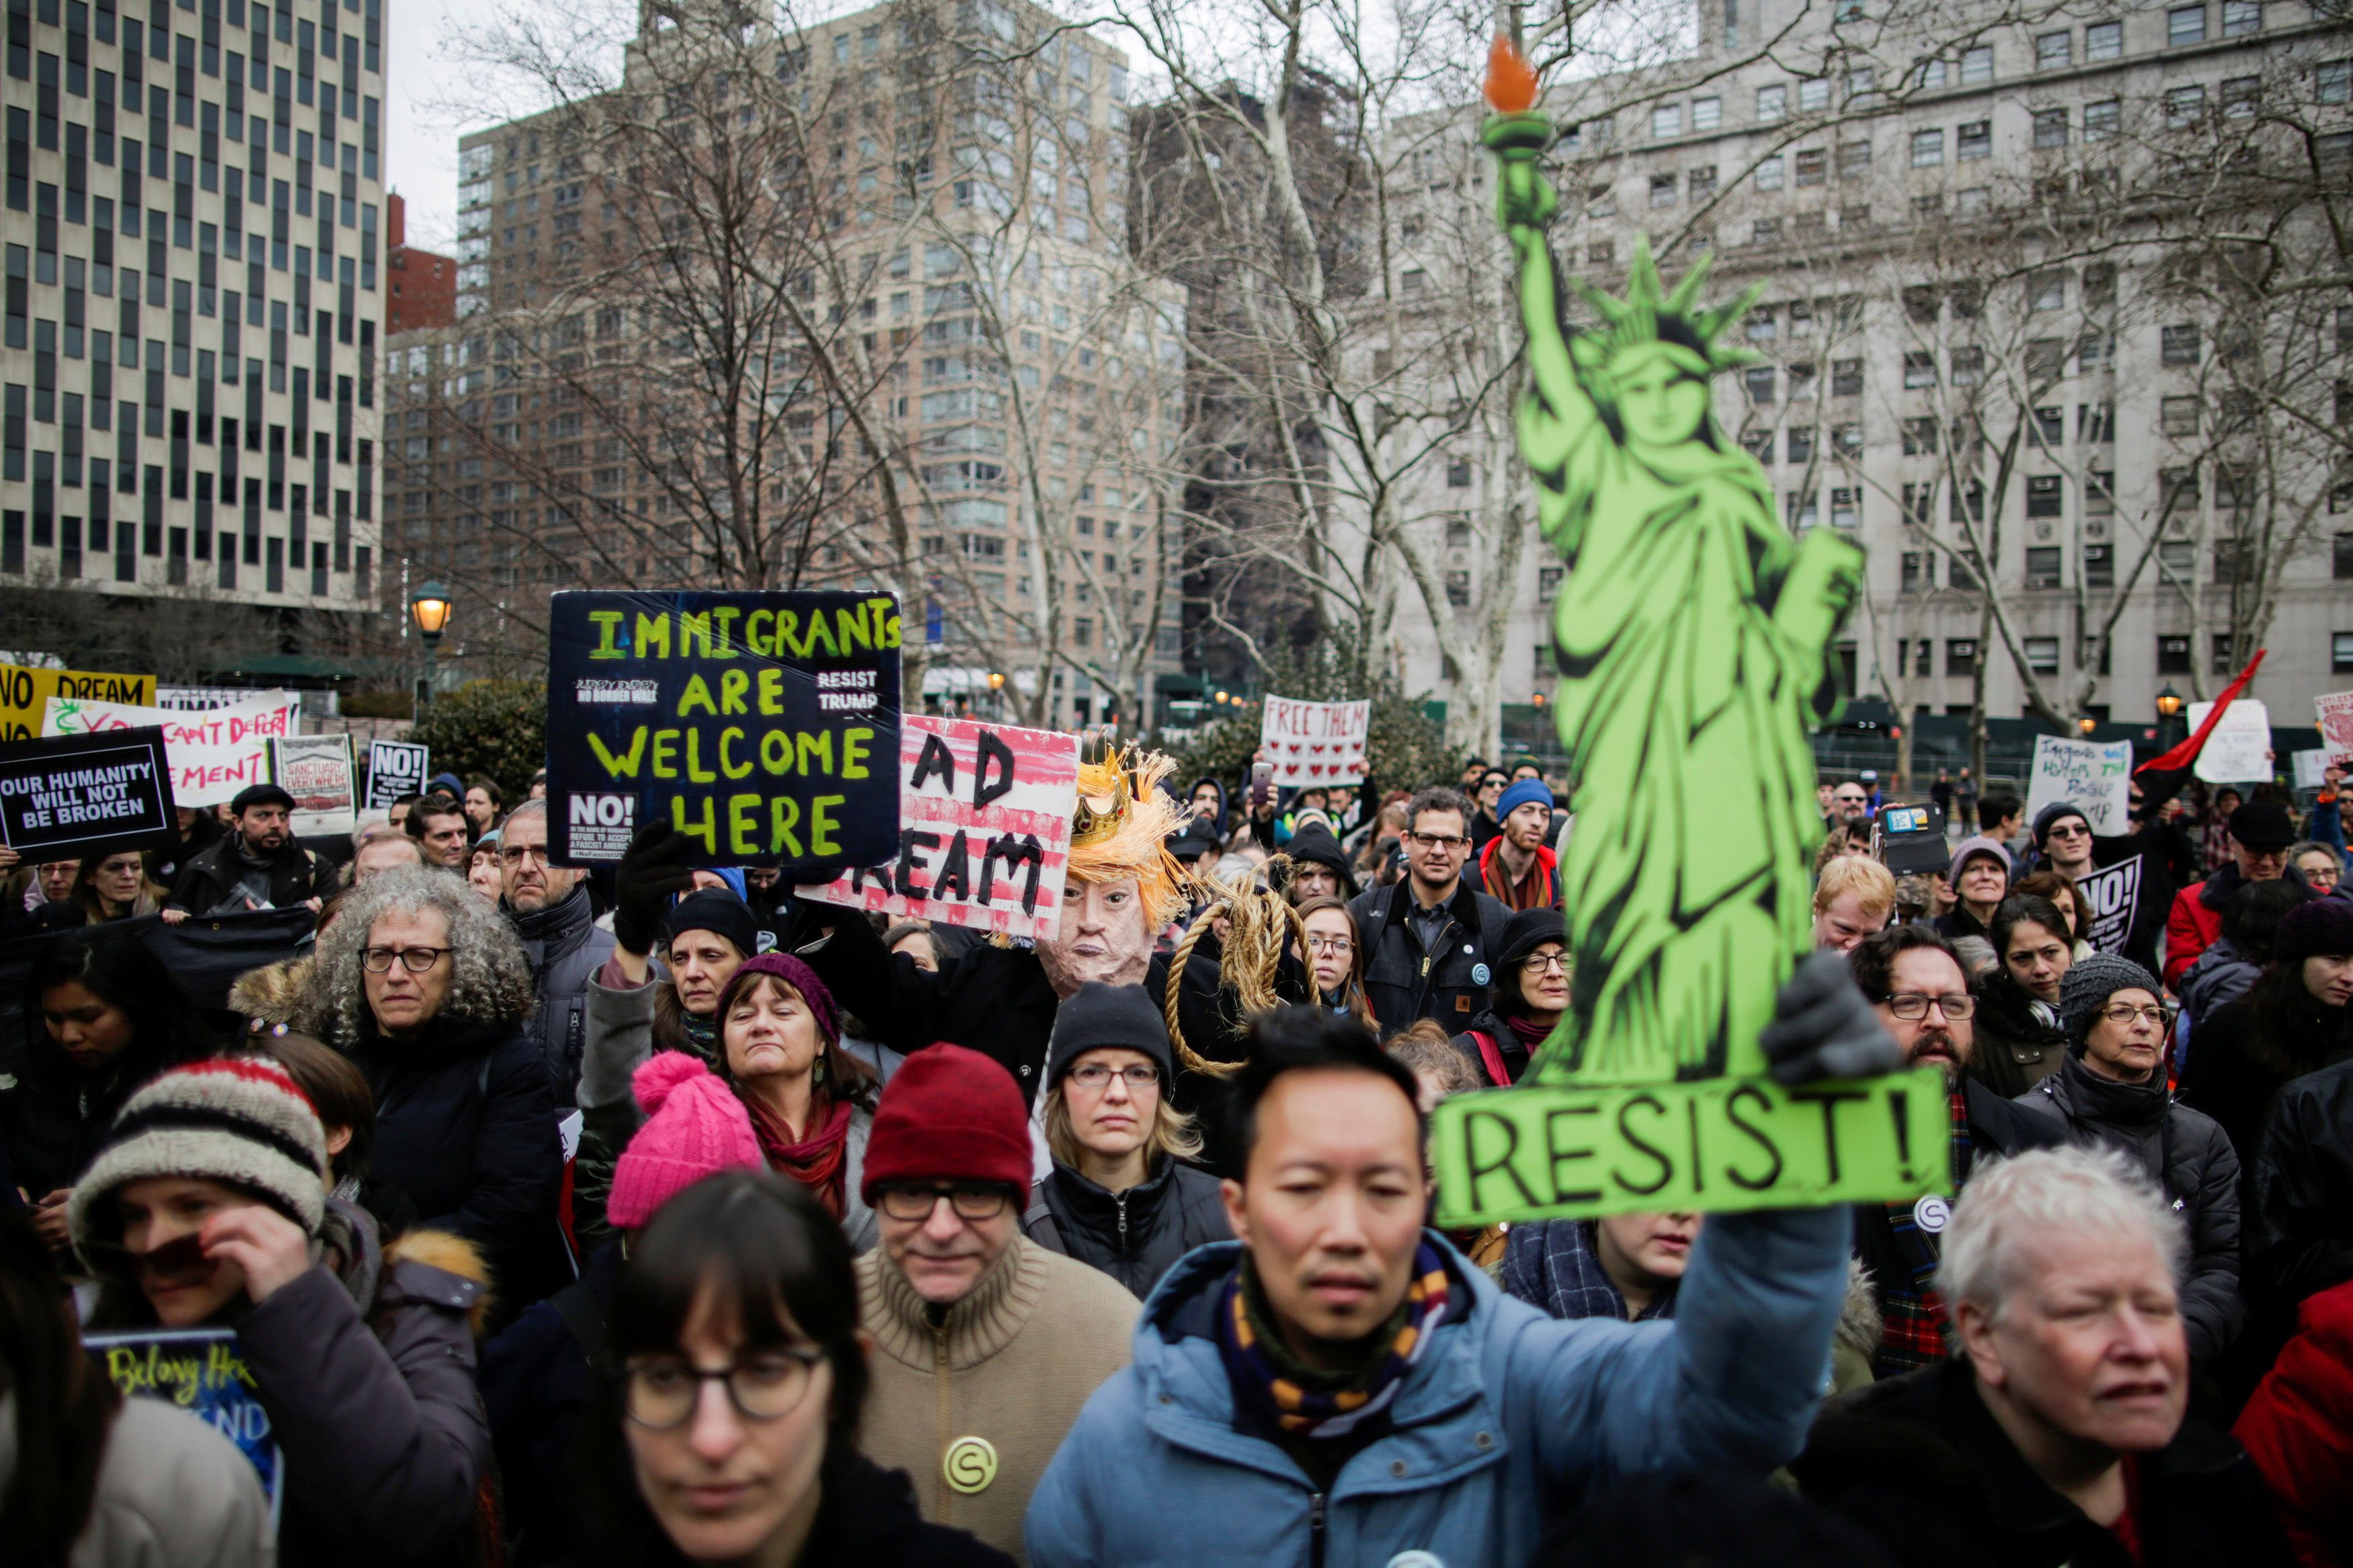 People participate in a protest against U.S. Immigration Policies.